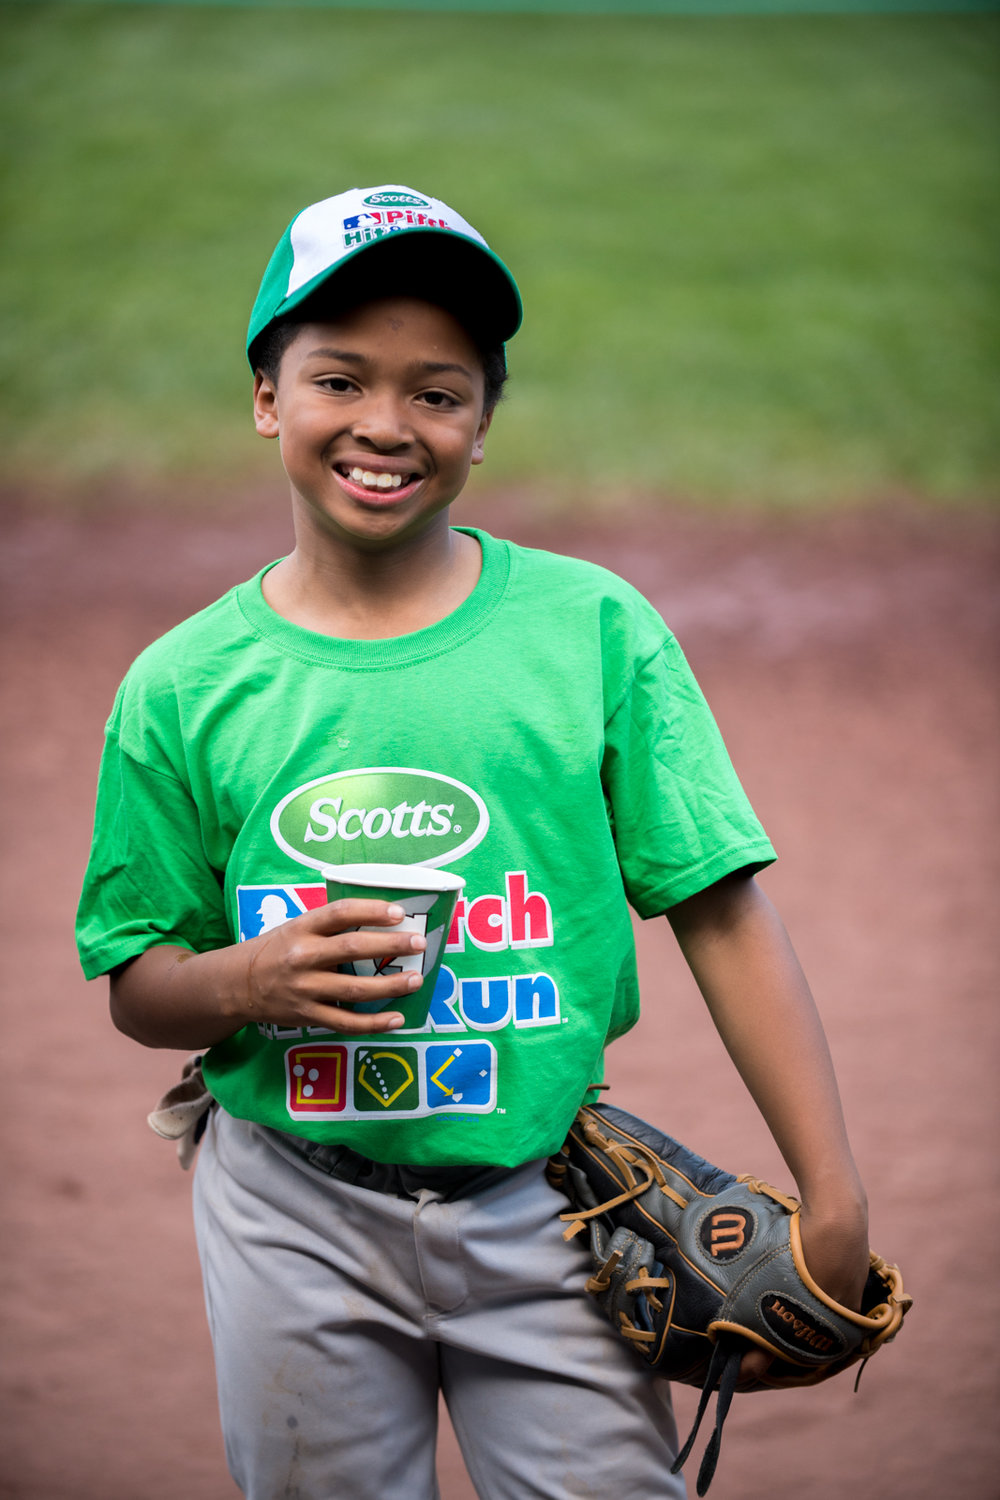 davonn hit pitch run-16.jpg